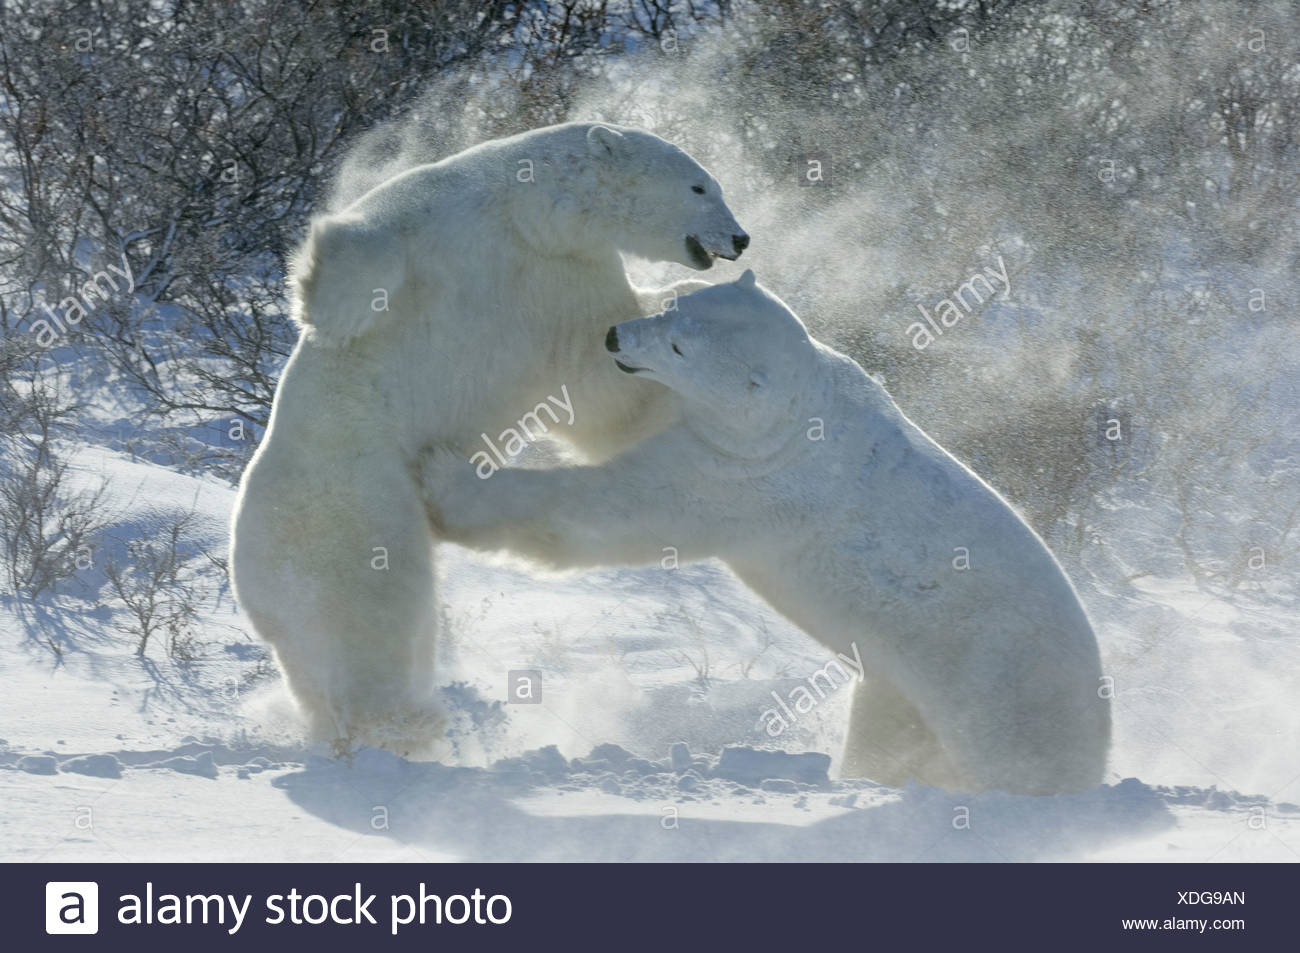 Polar bears in the wild A powerful predator and a vulnerable or potentially endangered species Two animals wrestling each other - Stock Image